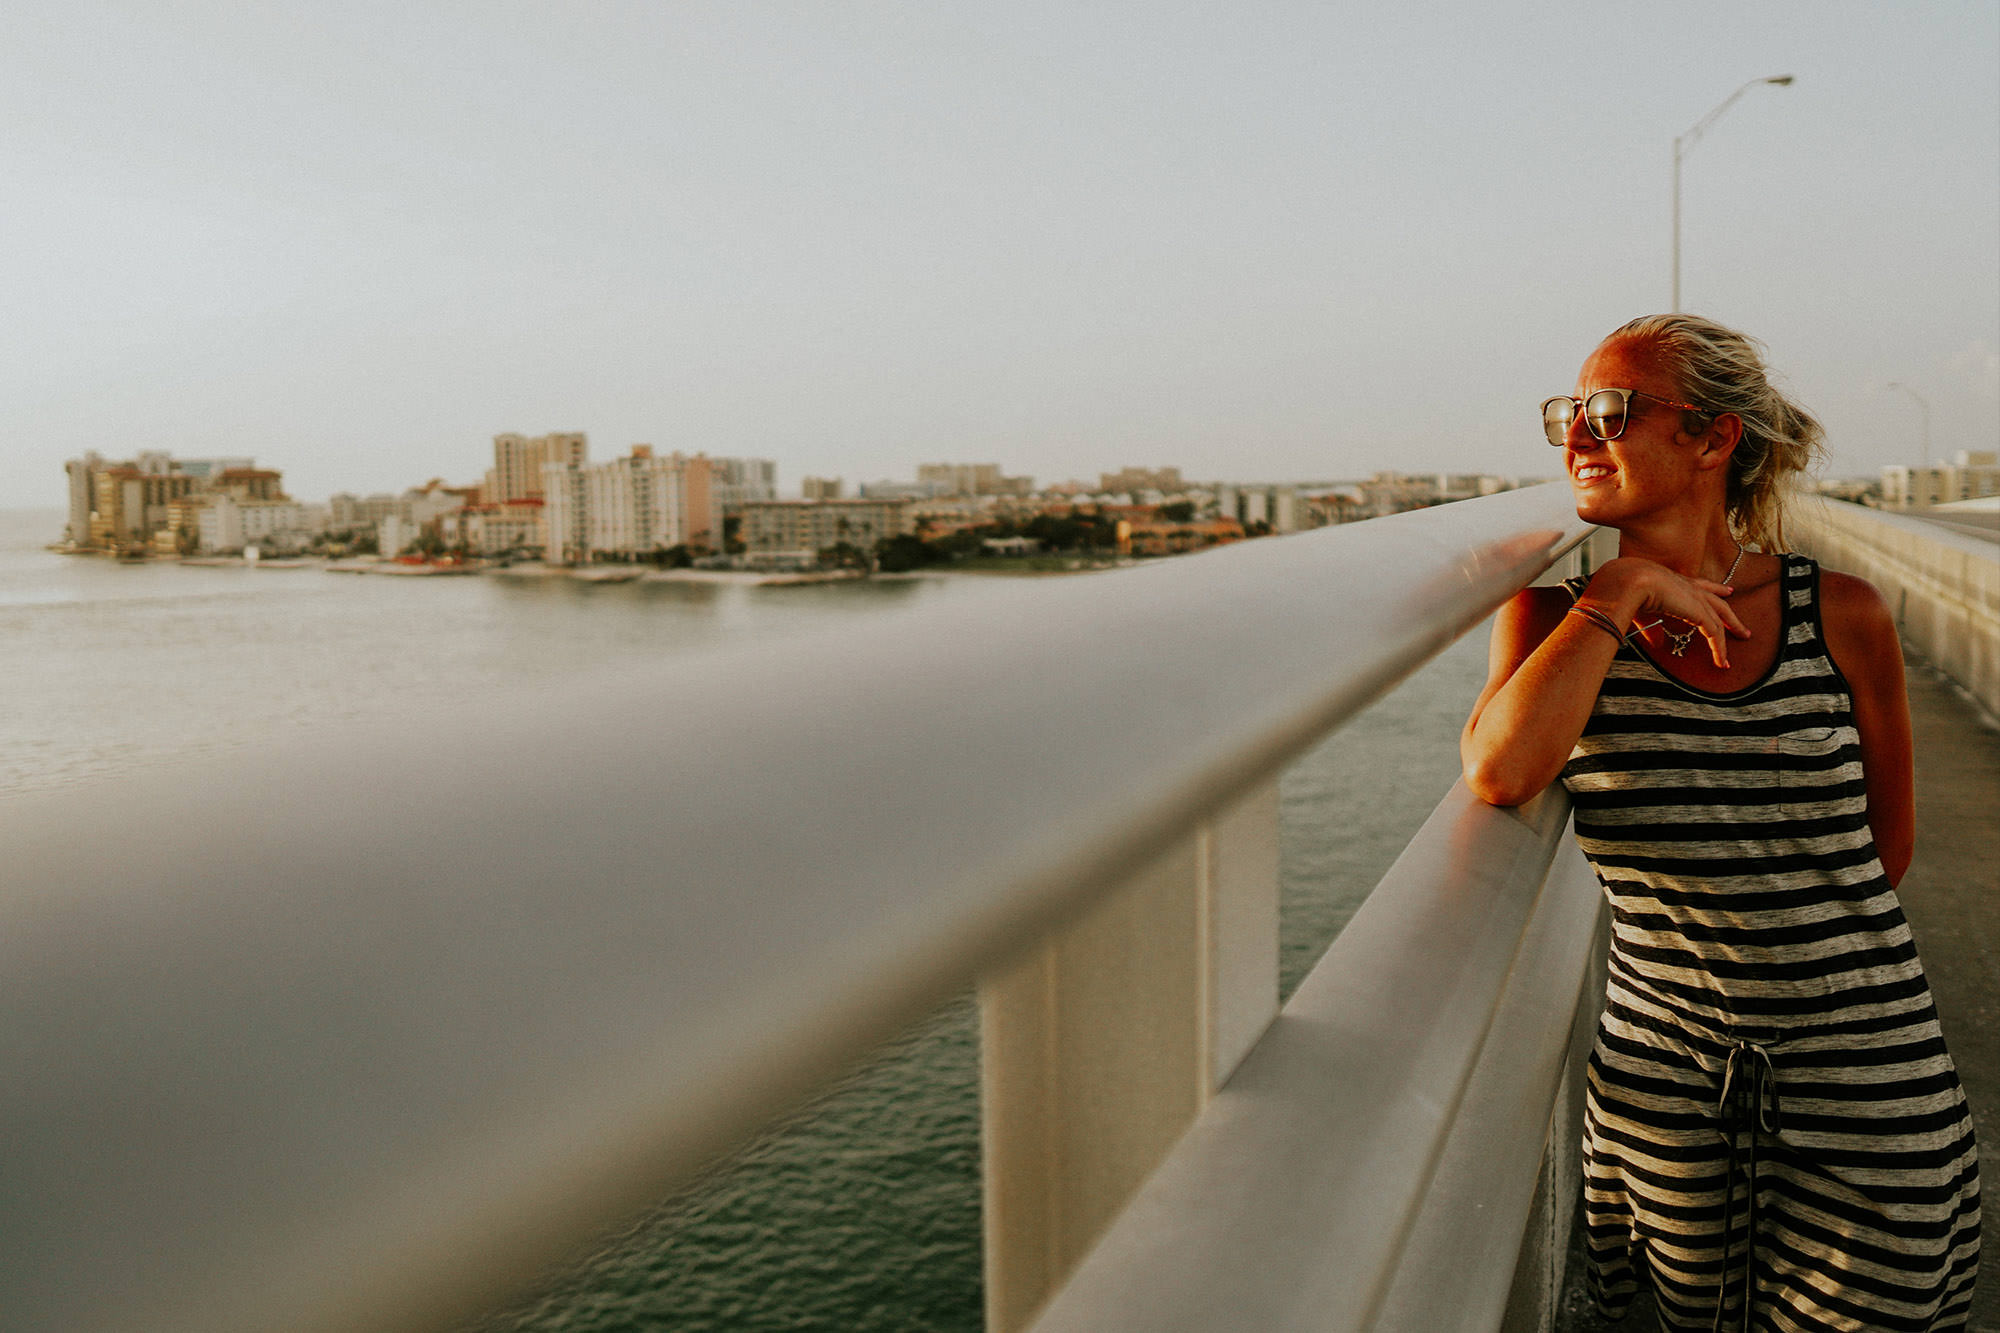 girl with shades on looking into the sunset on a bridge in clearwater